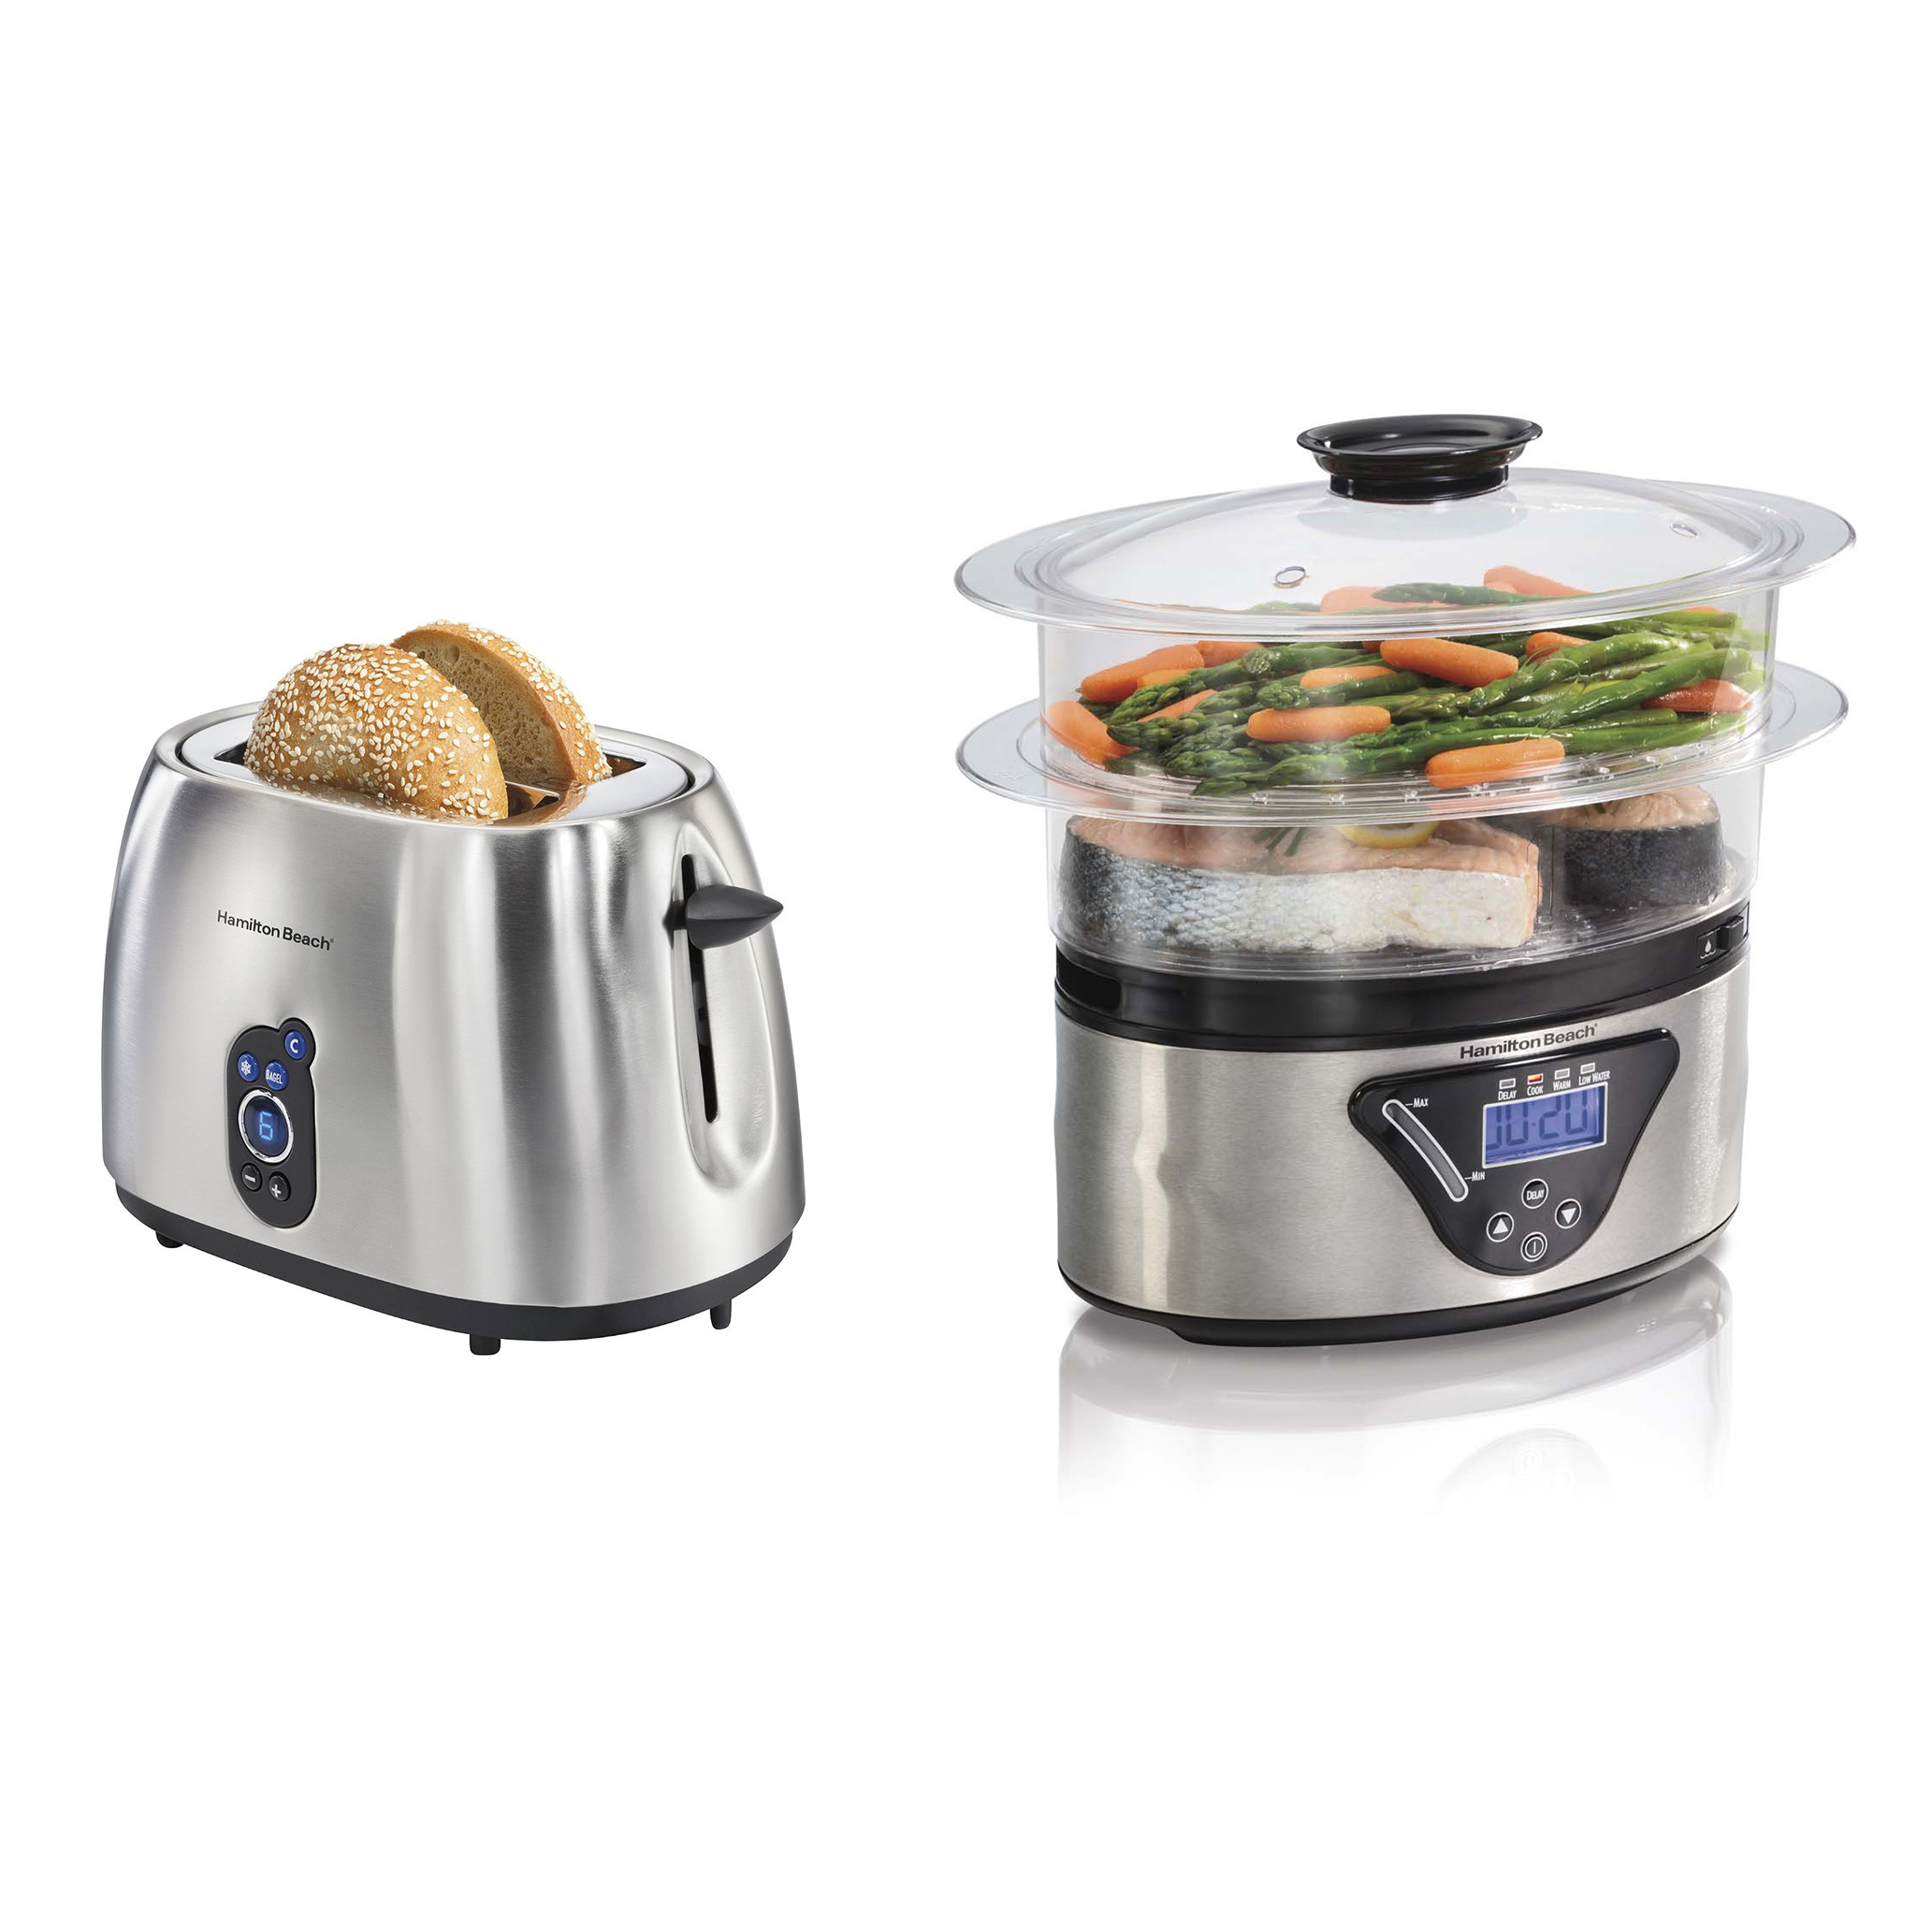 Hamilton Beach 2-Slice Digital Toaster + Hamilton Beach 5.5 Quart 2 Tier Steamer